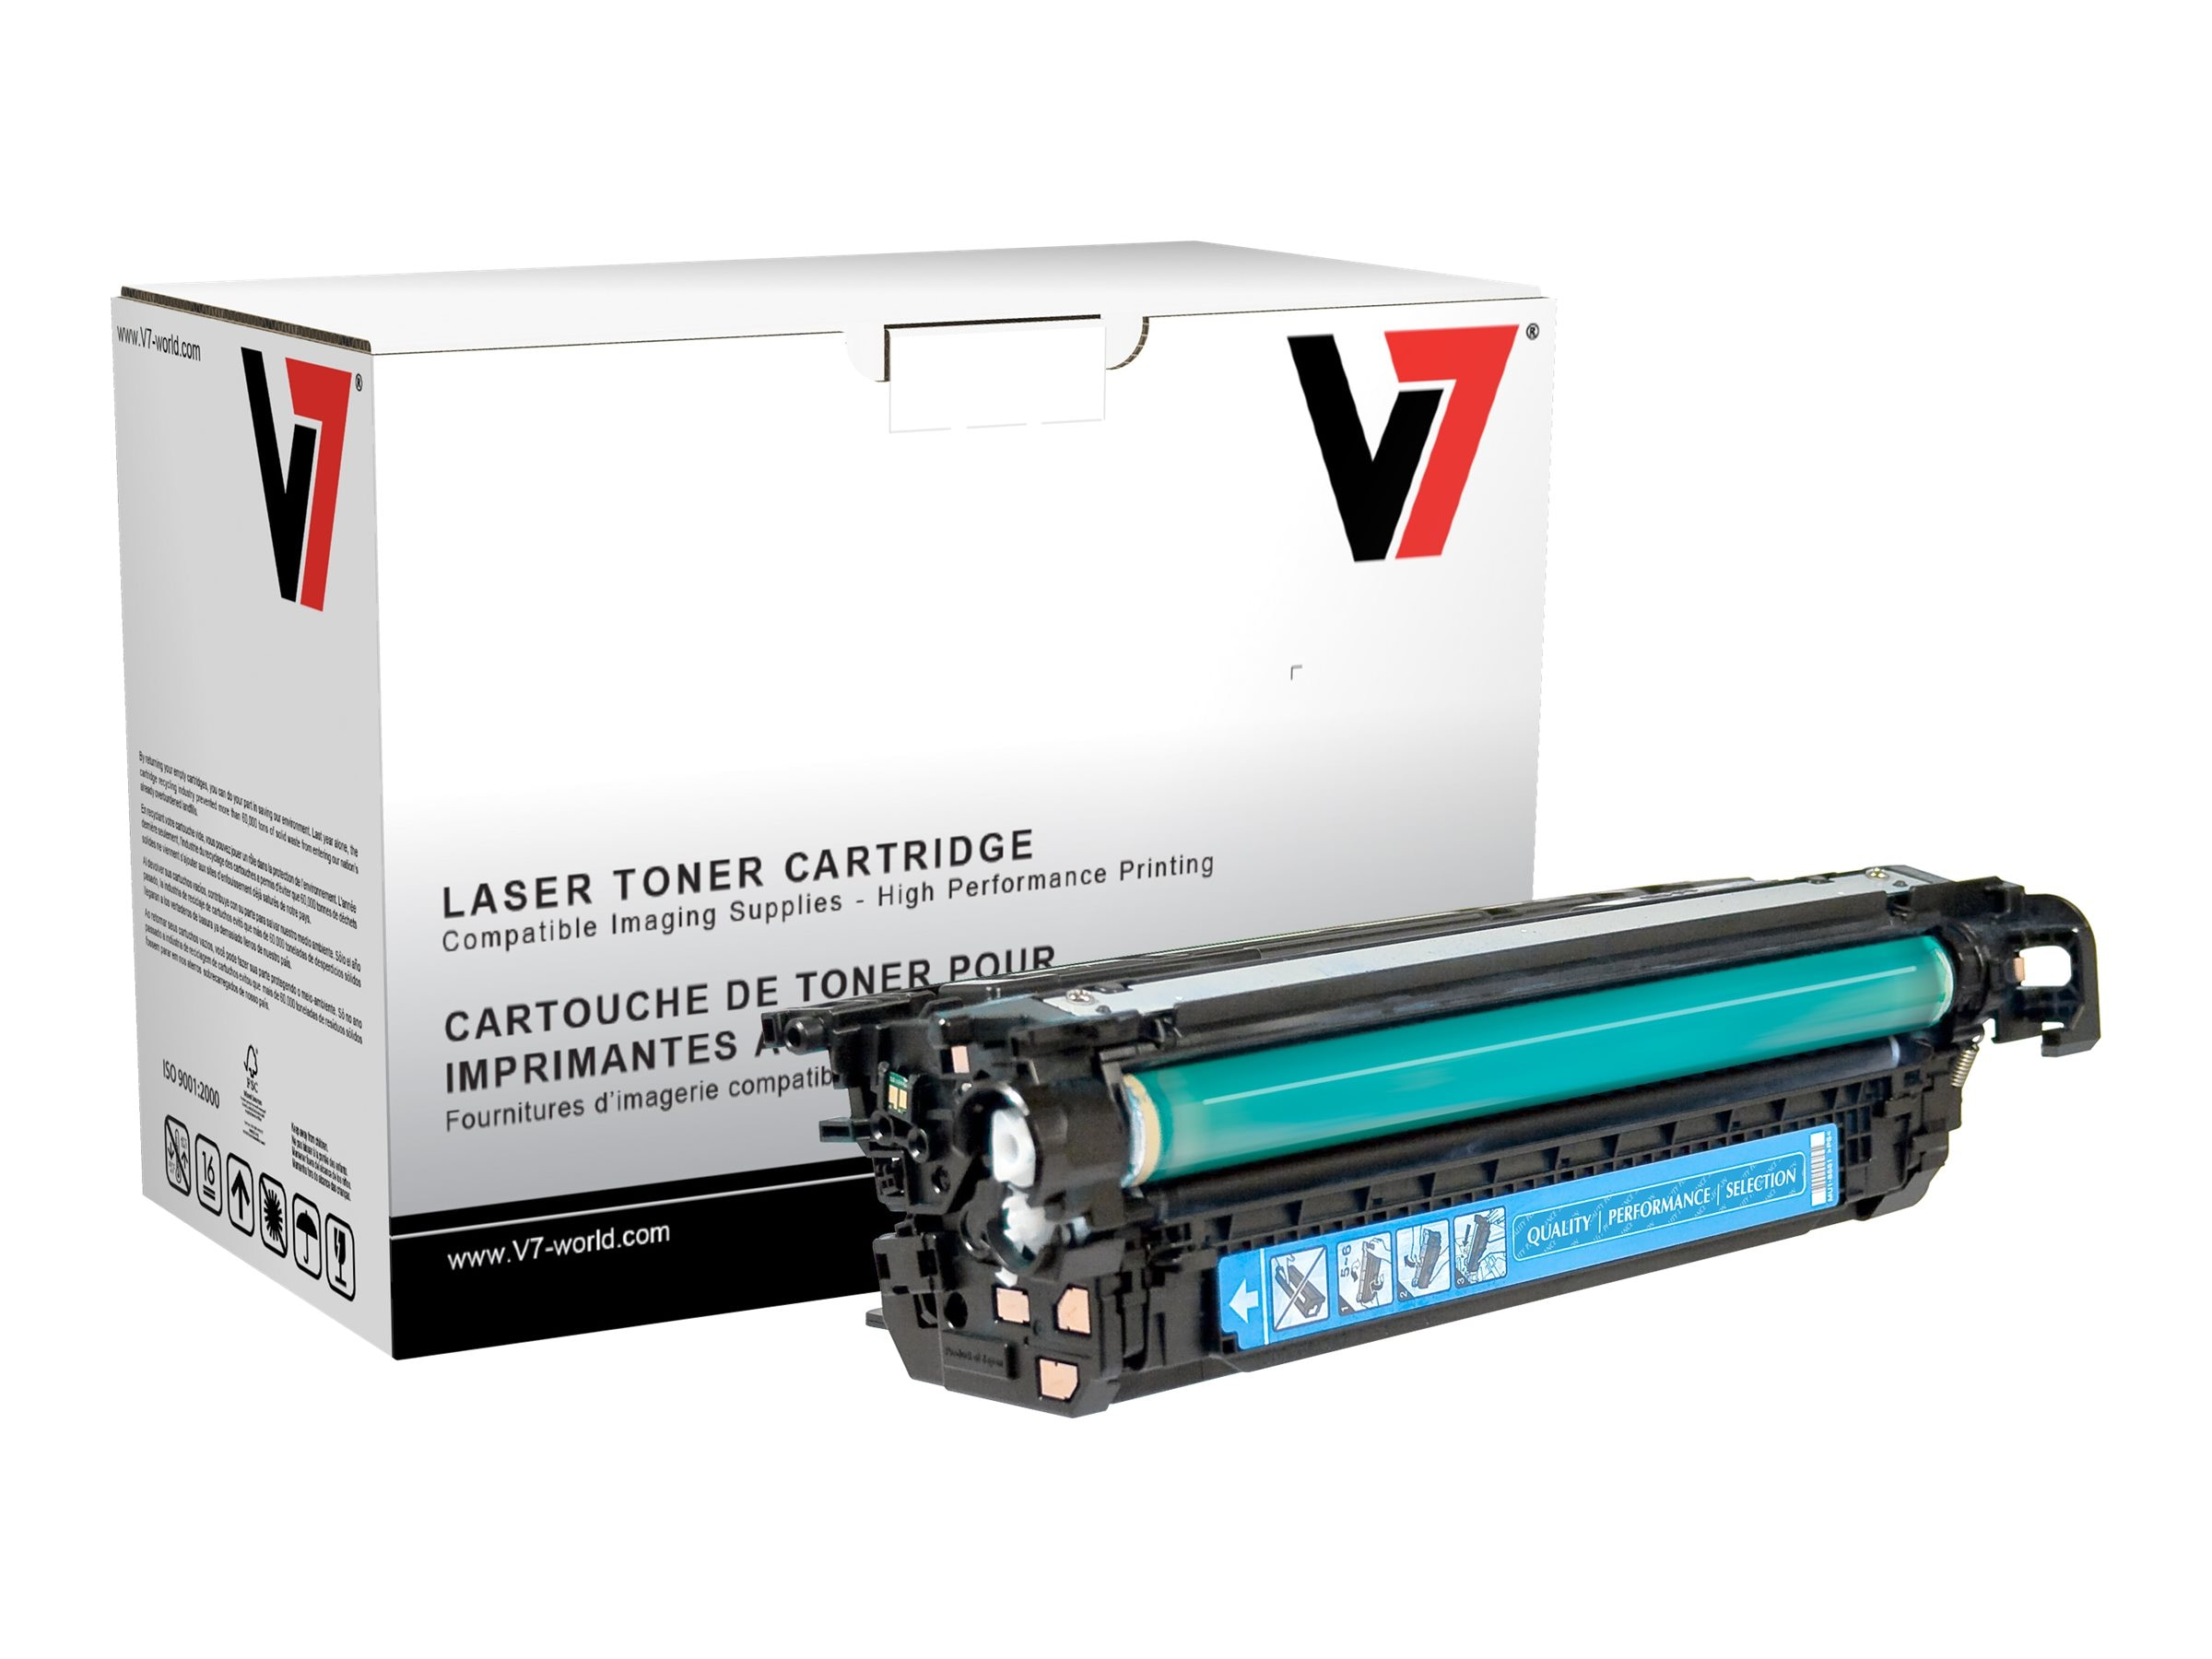 V7 CE261A Cyan Toner Cartridge for HP LaserJet CP4025 4525 (TAA Compliant), THC2261A